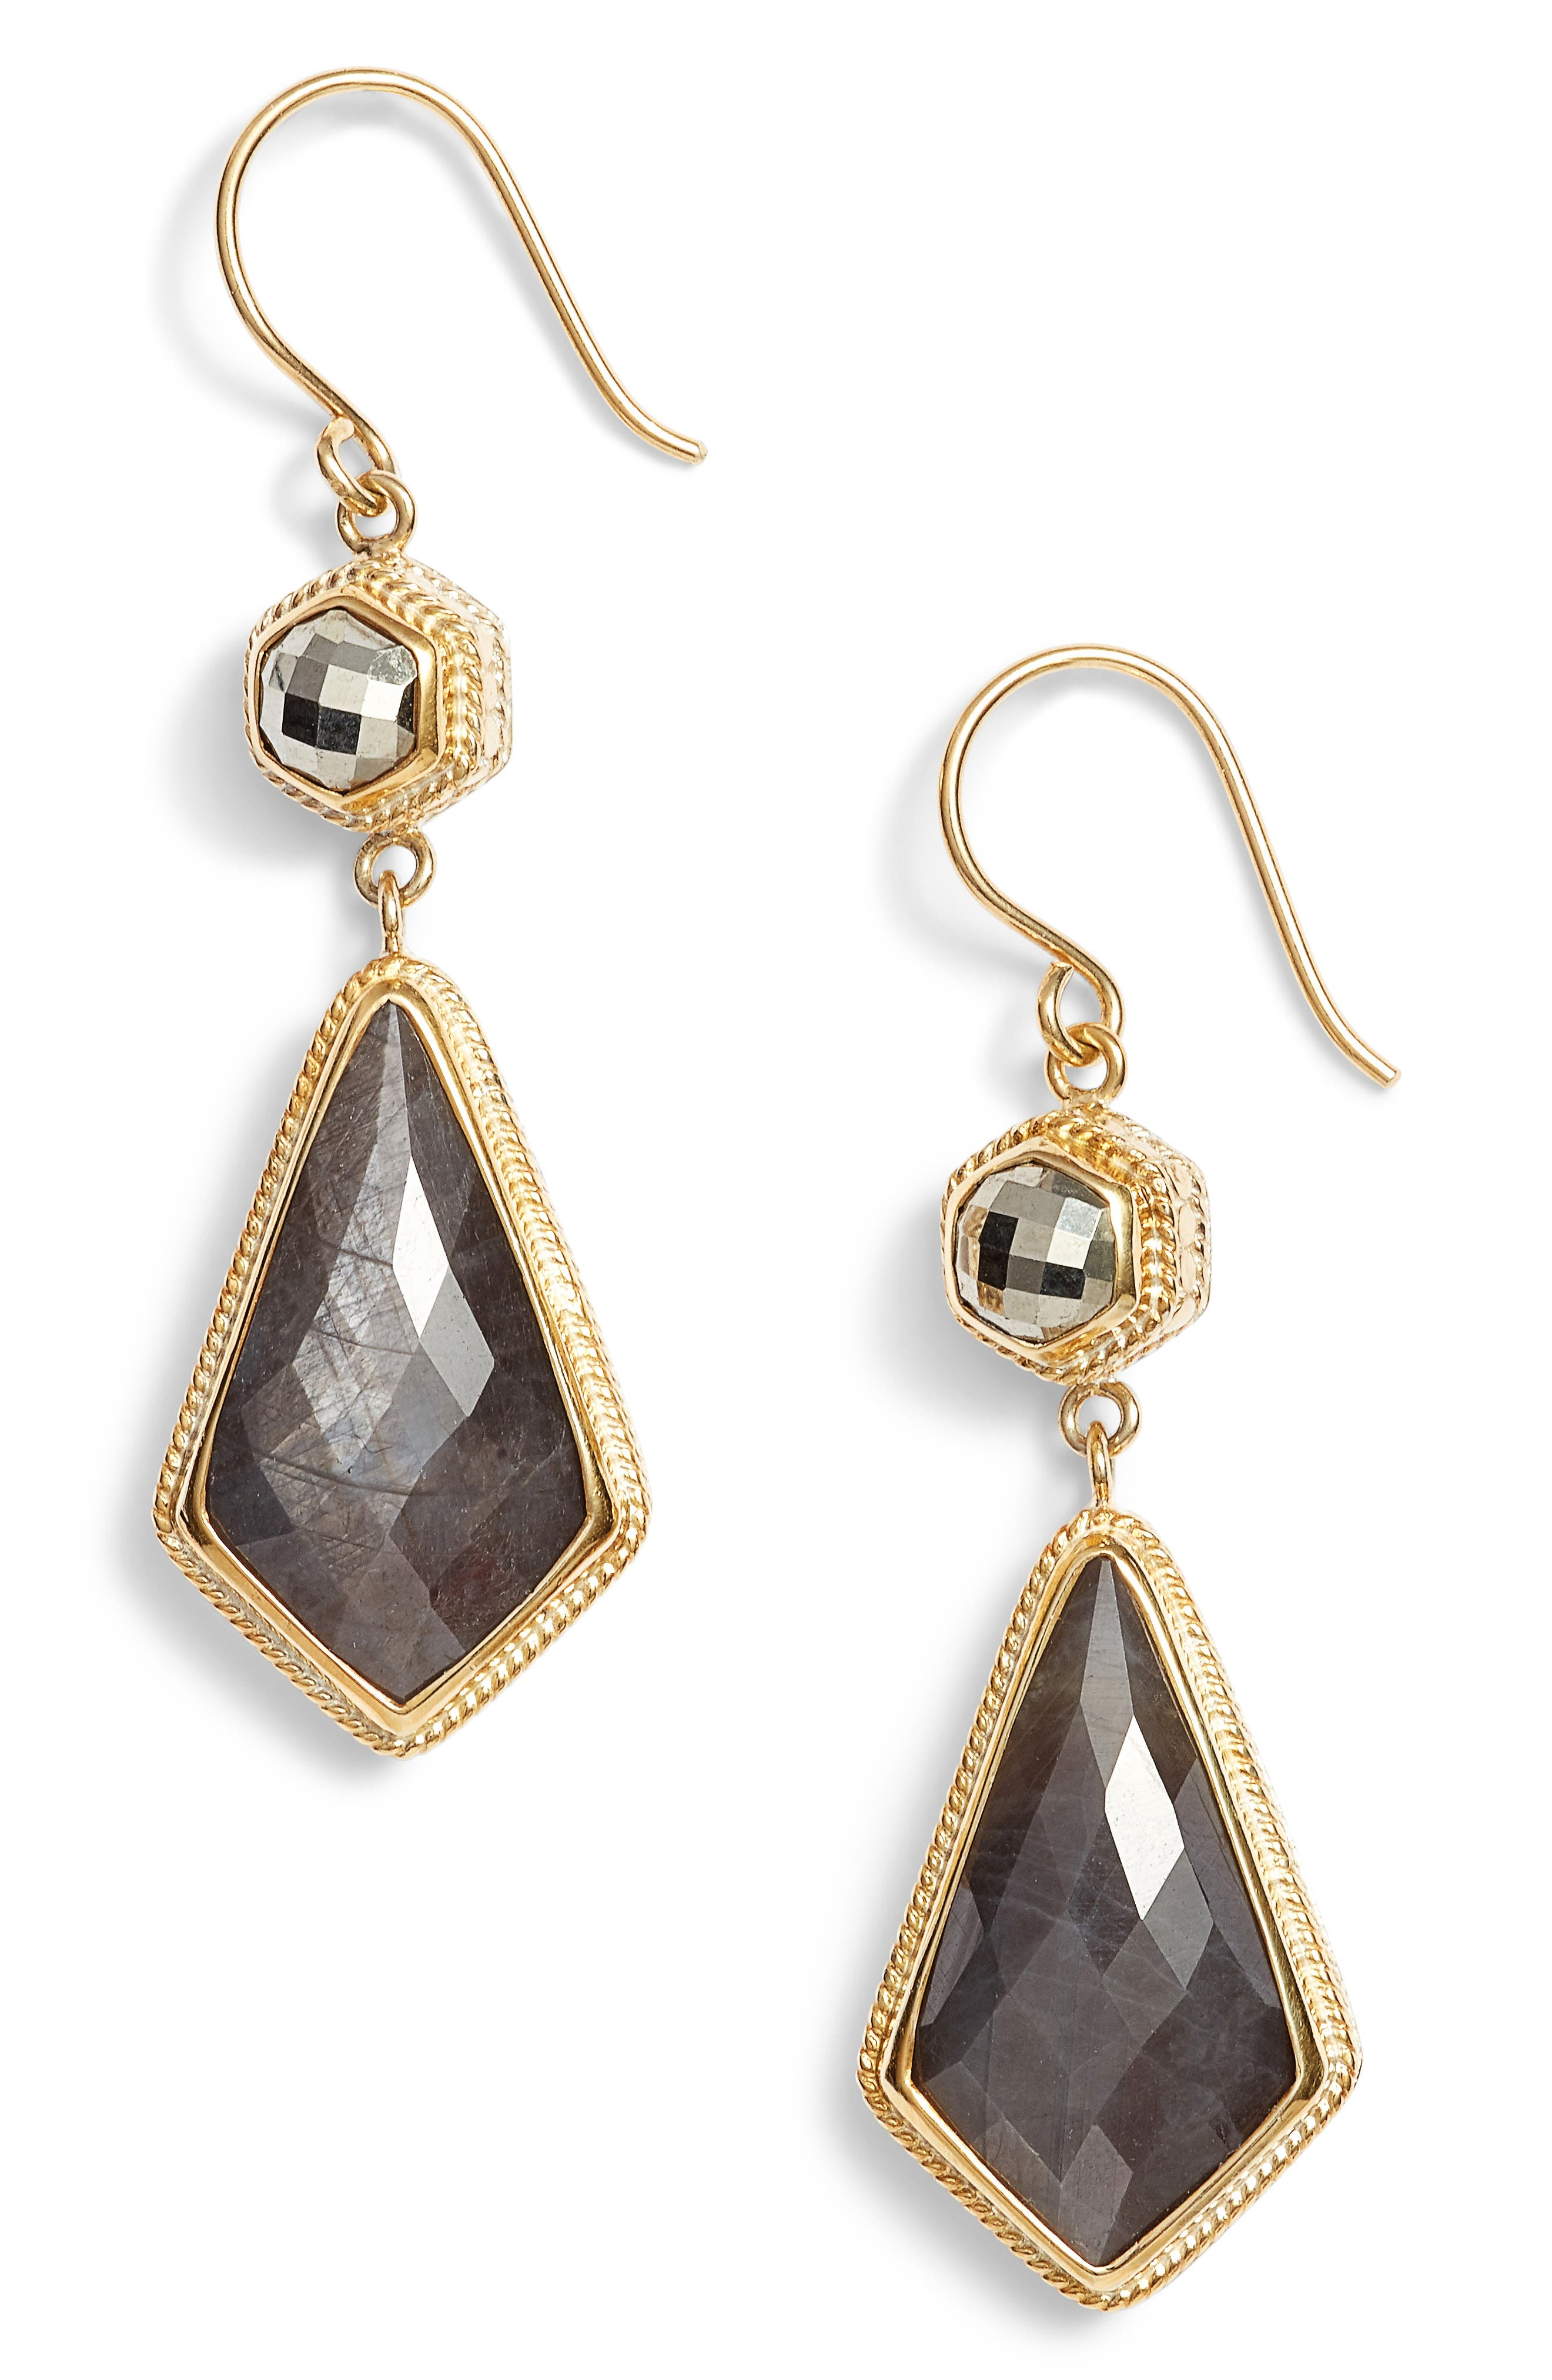 Grey Sapphire & Pyrite Double Drop Earrings,                         Main,                         color, Gold/ Silver/ Grey/ Pyrite